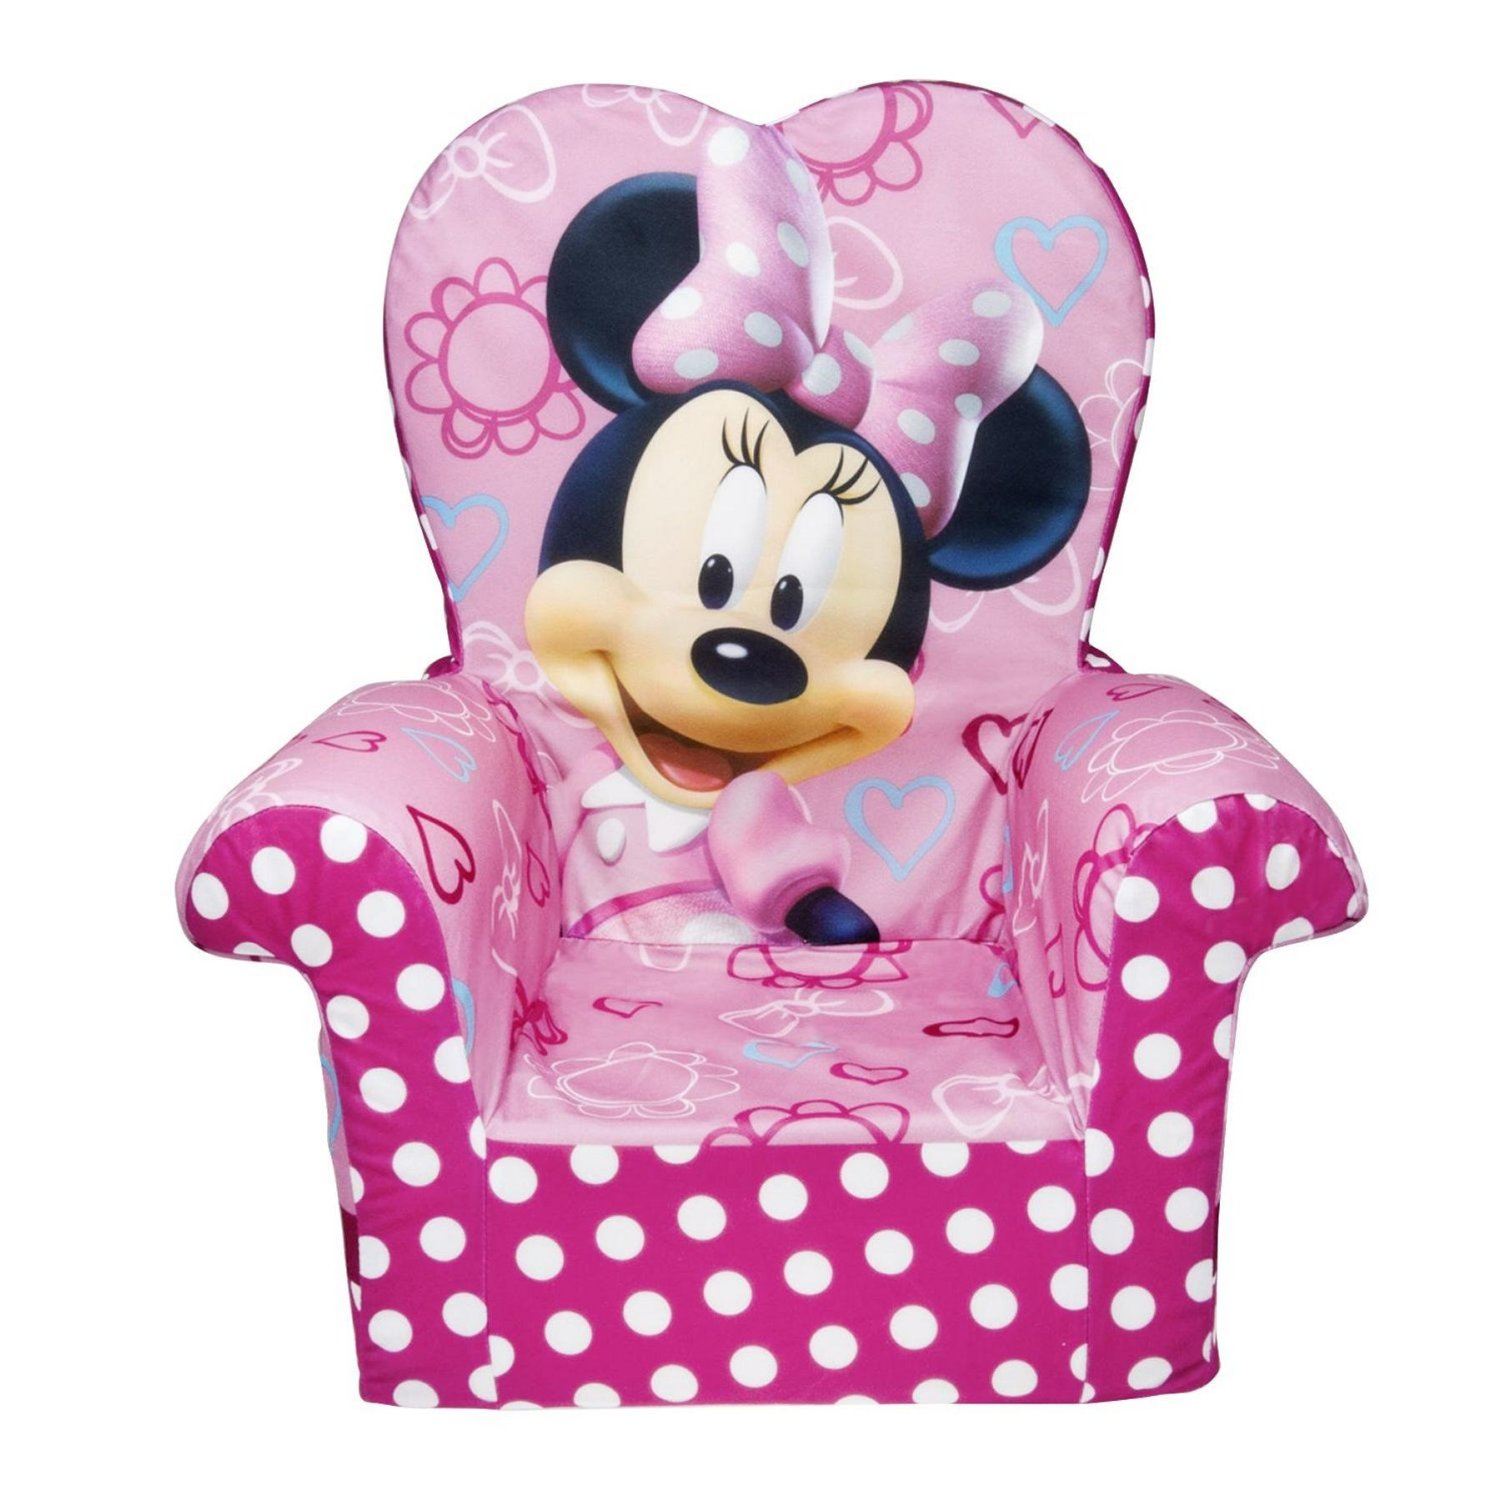 Minnie Mouse Chairs Fold Out Couches & Flip Sofas